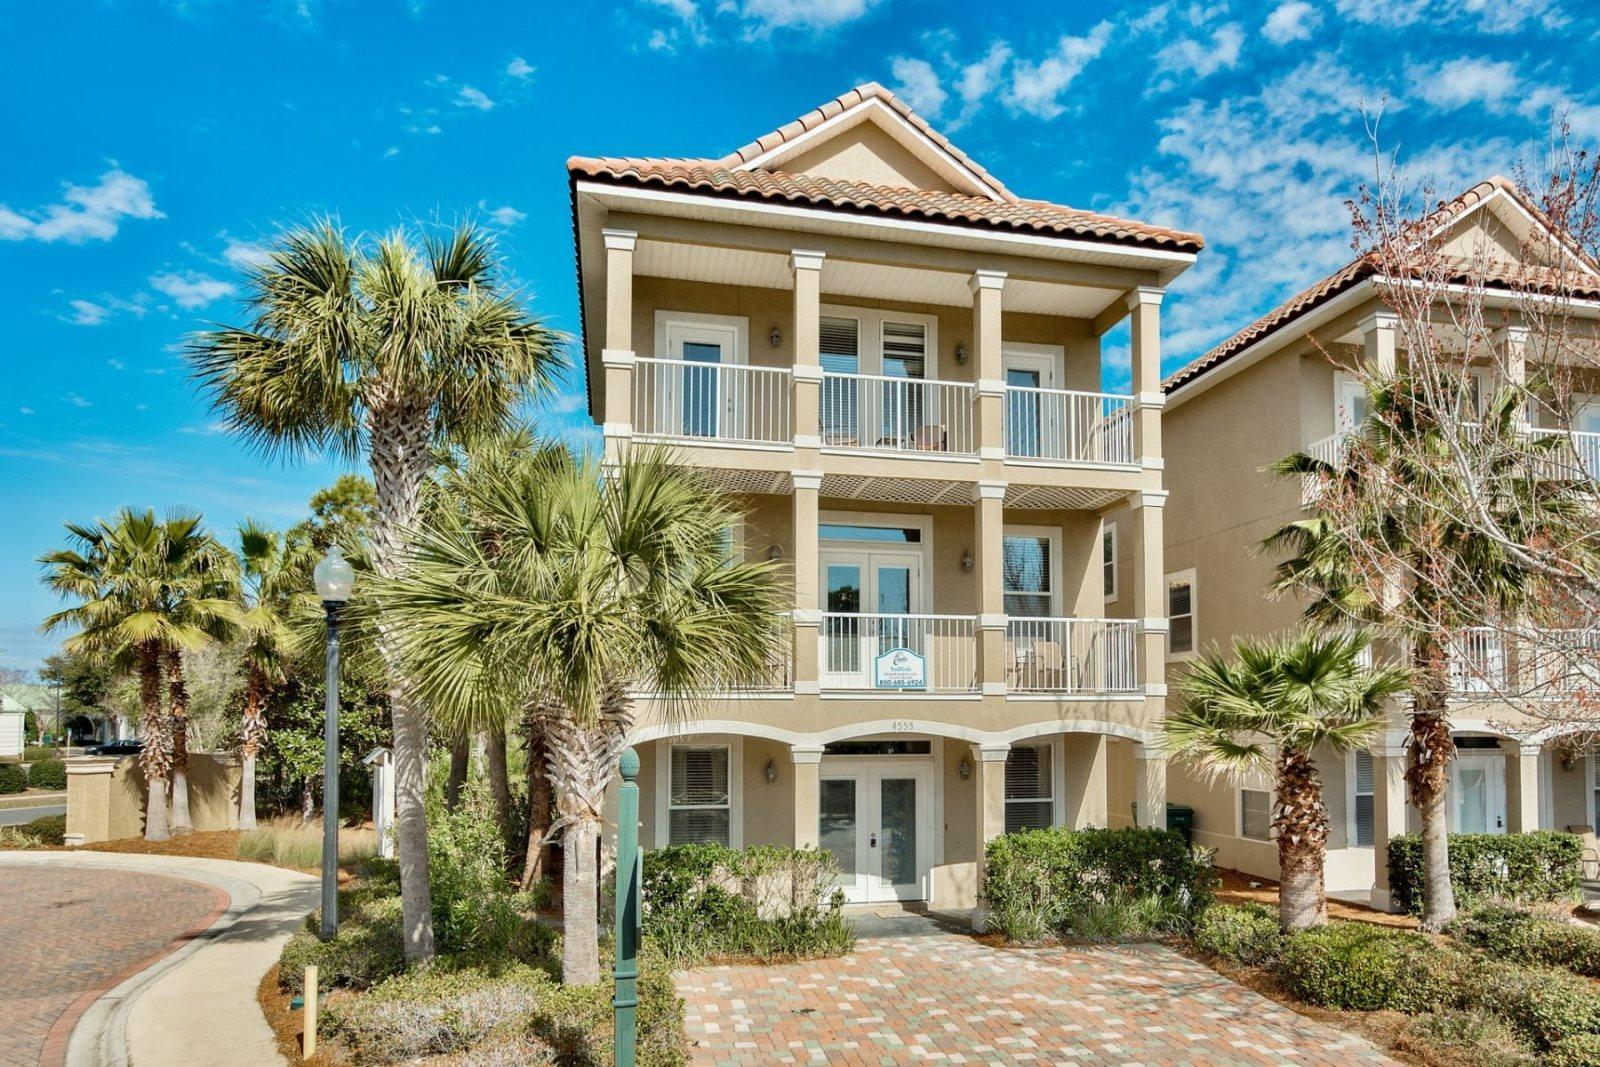 Looking for that hidden gem?  Look no more.  Check out this rental monster- Sailfish in Villages of Crystal Beach. Located on the northeast side of pool, corner lot.  Views of the pool don't get any better than this! Views of the pool from all 3 Porches. Gross rental to date for 2021 is $83,855, of which $71,880 is  rental rate. Villages of Crystal Beach is well known for it's phenomenal rental return. Location can't be beat, being right across the highway from Whole Foods, Destin Commons with tons of Shopping, dining, entertainment, bowling and so much more. You can walk to numerous restaurants and more shopping! Included is a seasonal shuttle to the beach. The Lagoon pool has long been know to be one of the most beautiful in Destin. Tons of Water sports and nearby Golf Courses to enjoy